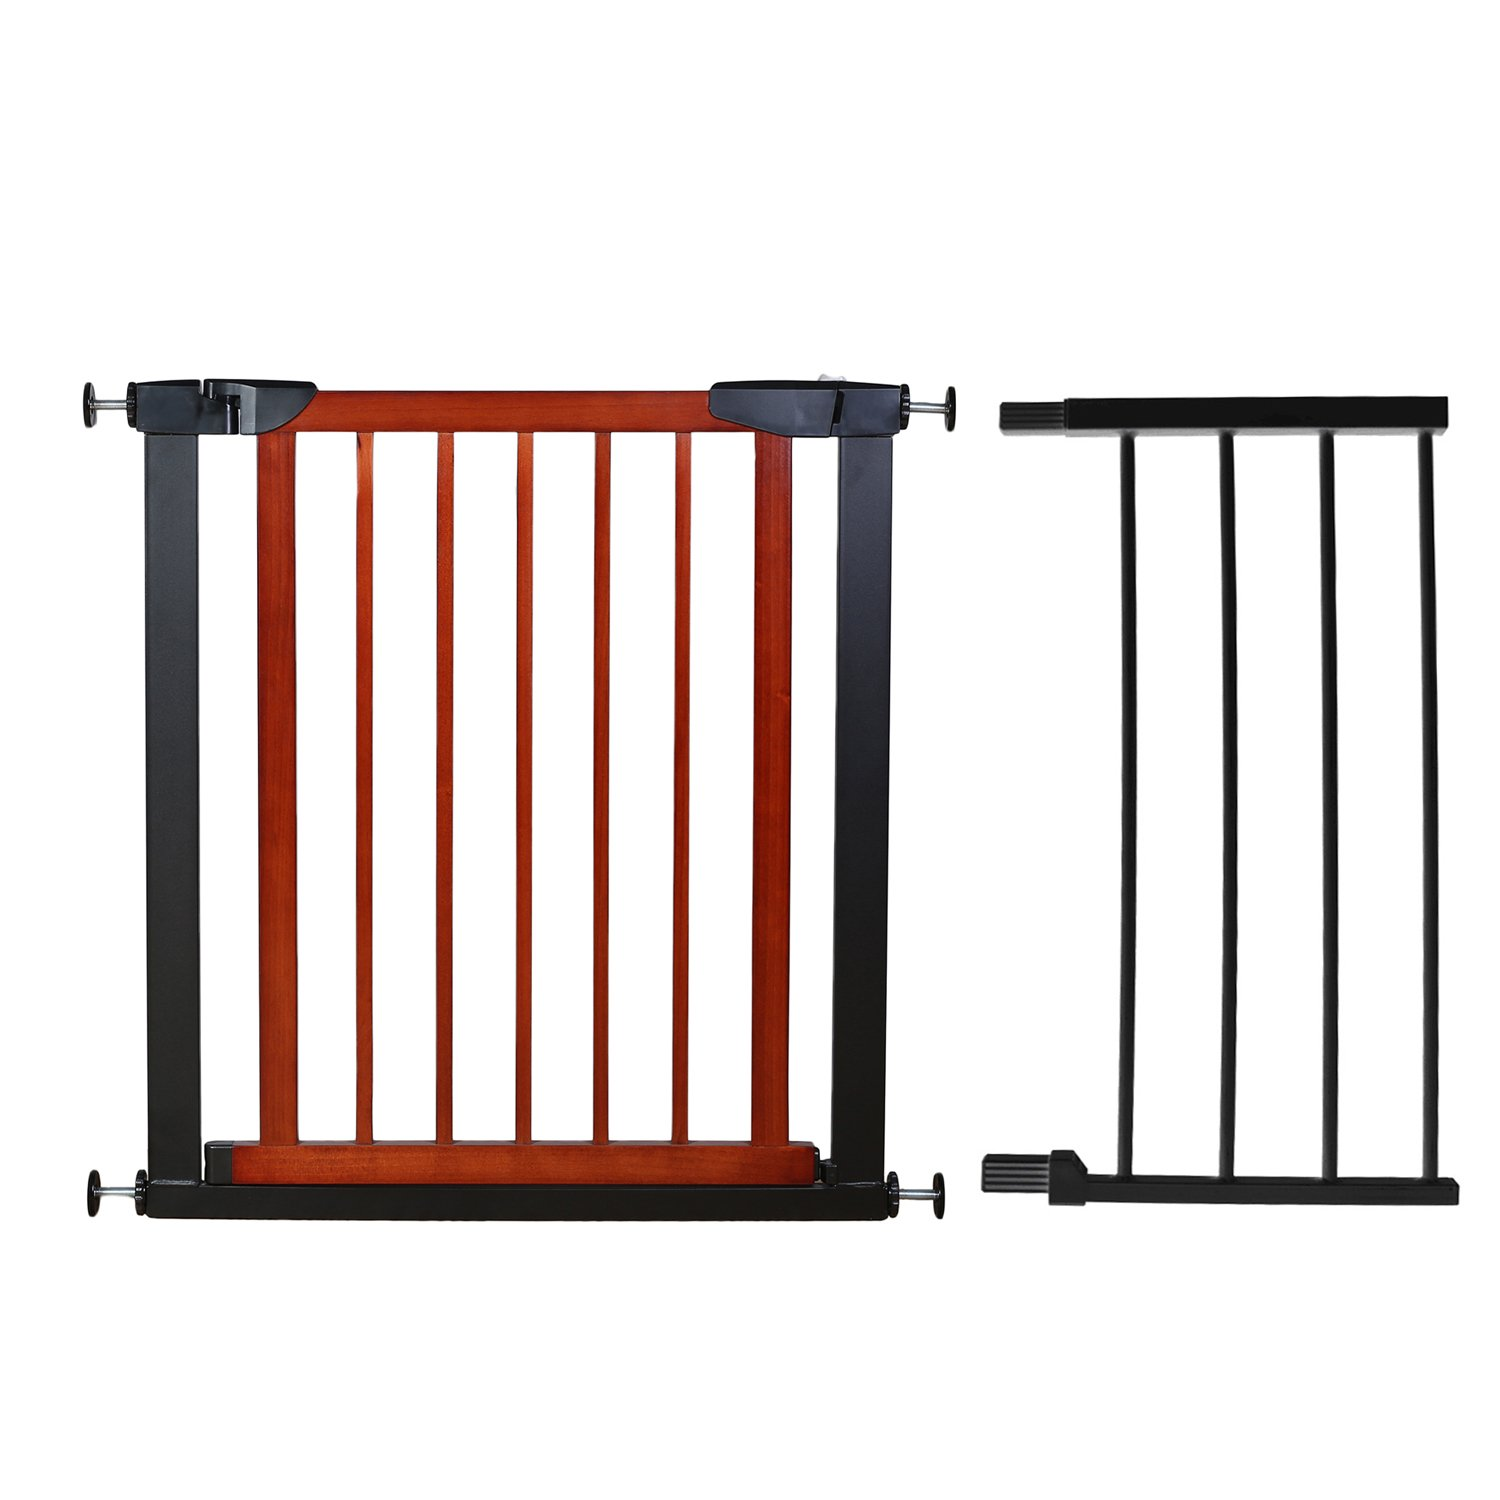 Fairy Baby Pet & Baby Gate Narrow Extra Wide for Stairs Metal and Wood Pressure Mounted Safety Walk Through Gate,Fit Spaces 68.11''-70.87'' (3-7 Days Delivered)